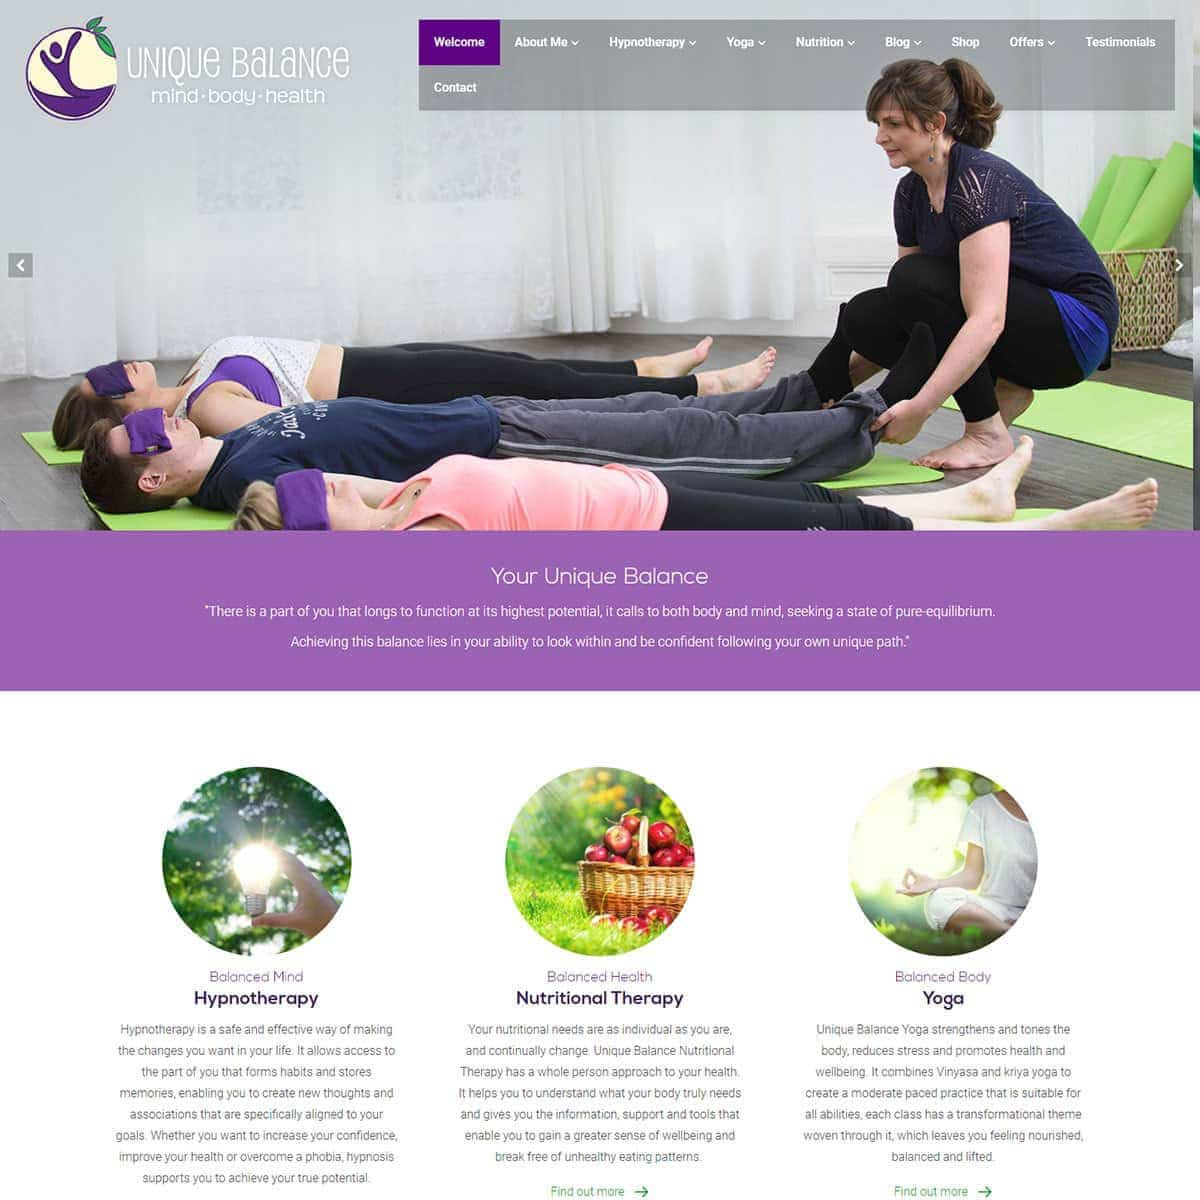 Unique Balance - HealthHosts - Web Design for Therapists